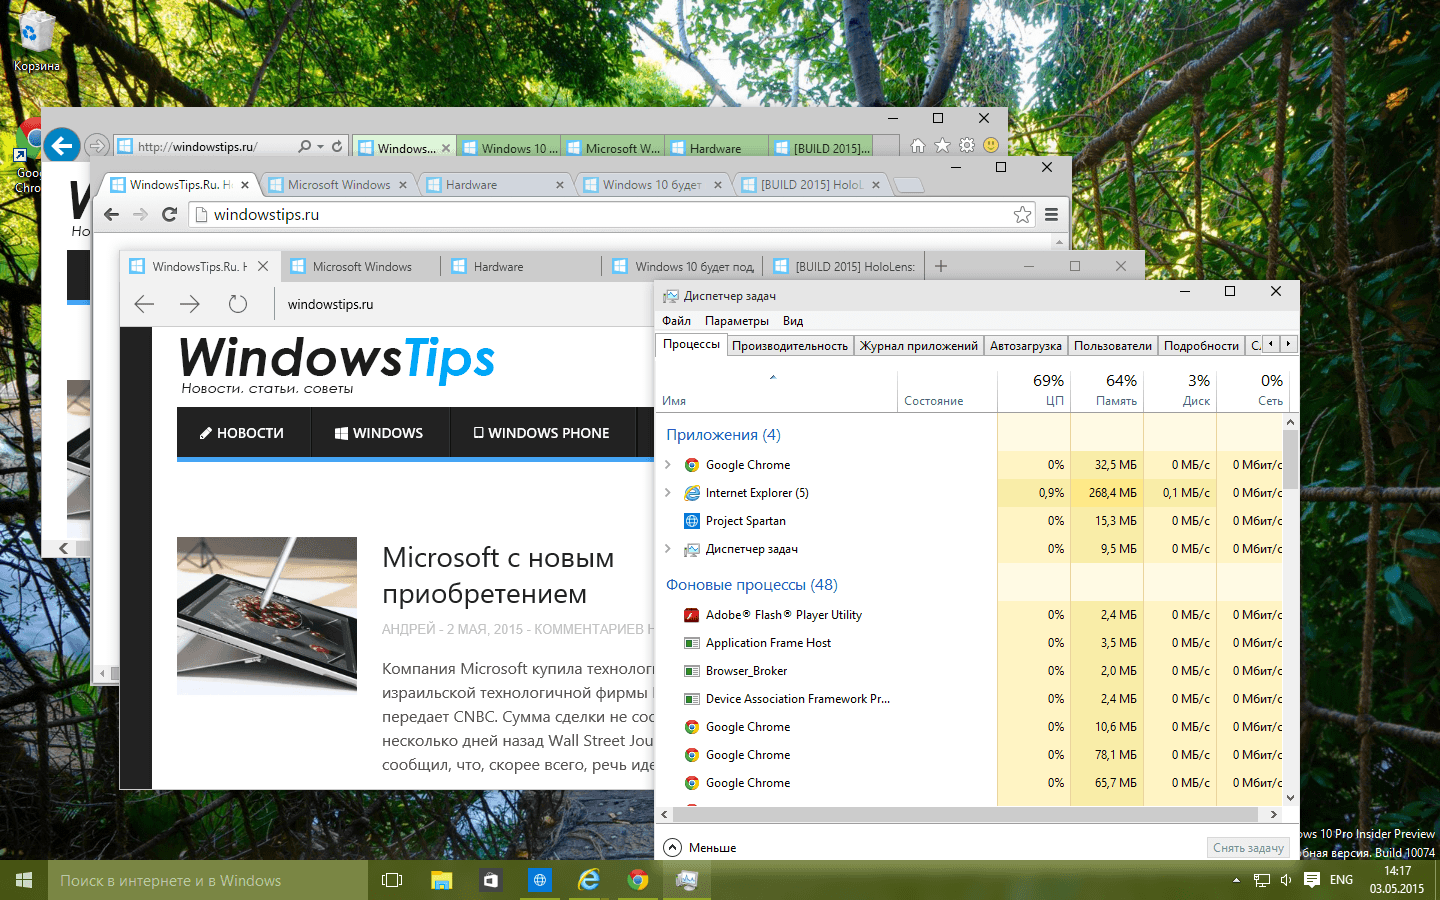 Edge Browser in Windows 10